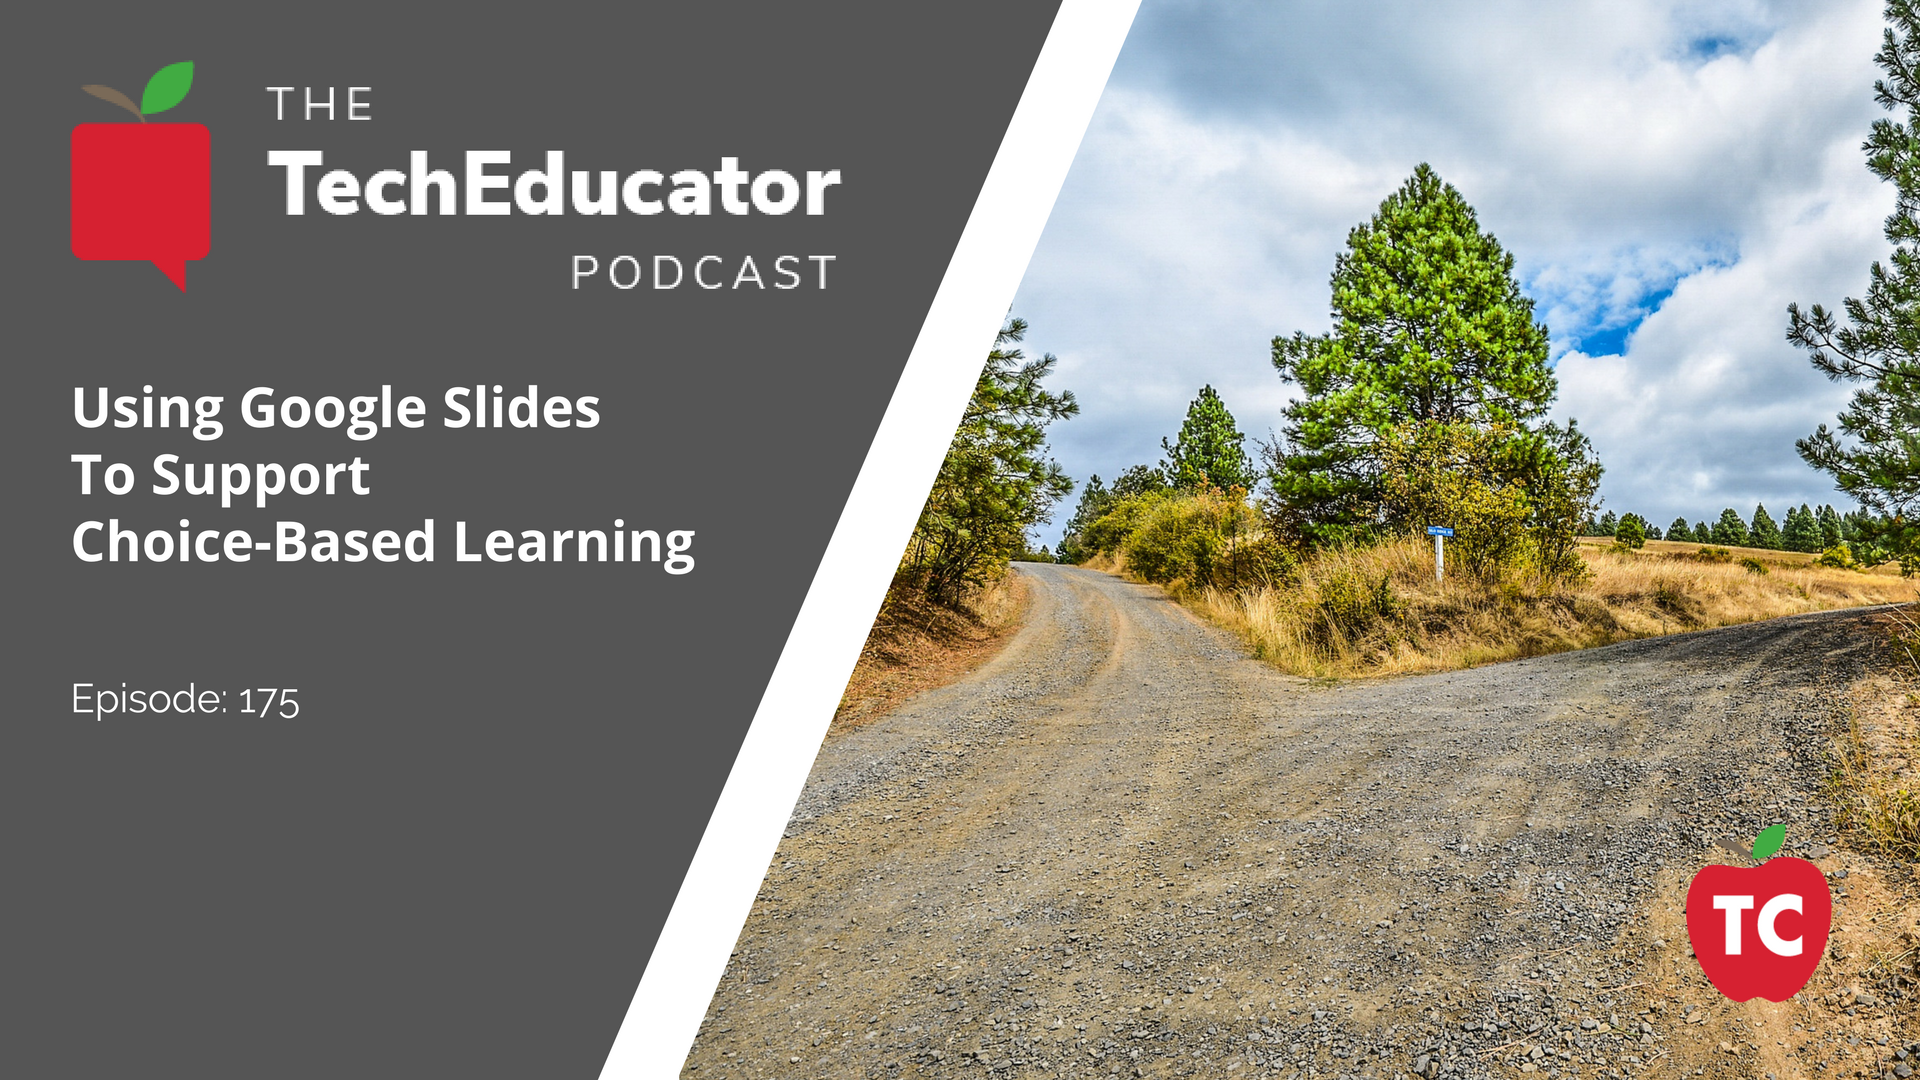 Using Google Slides for Choice Based Learning